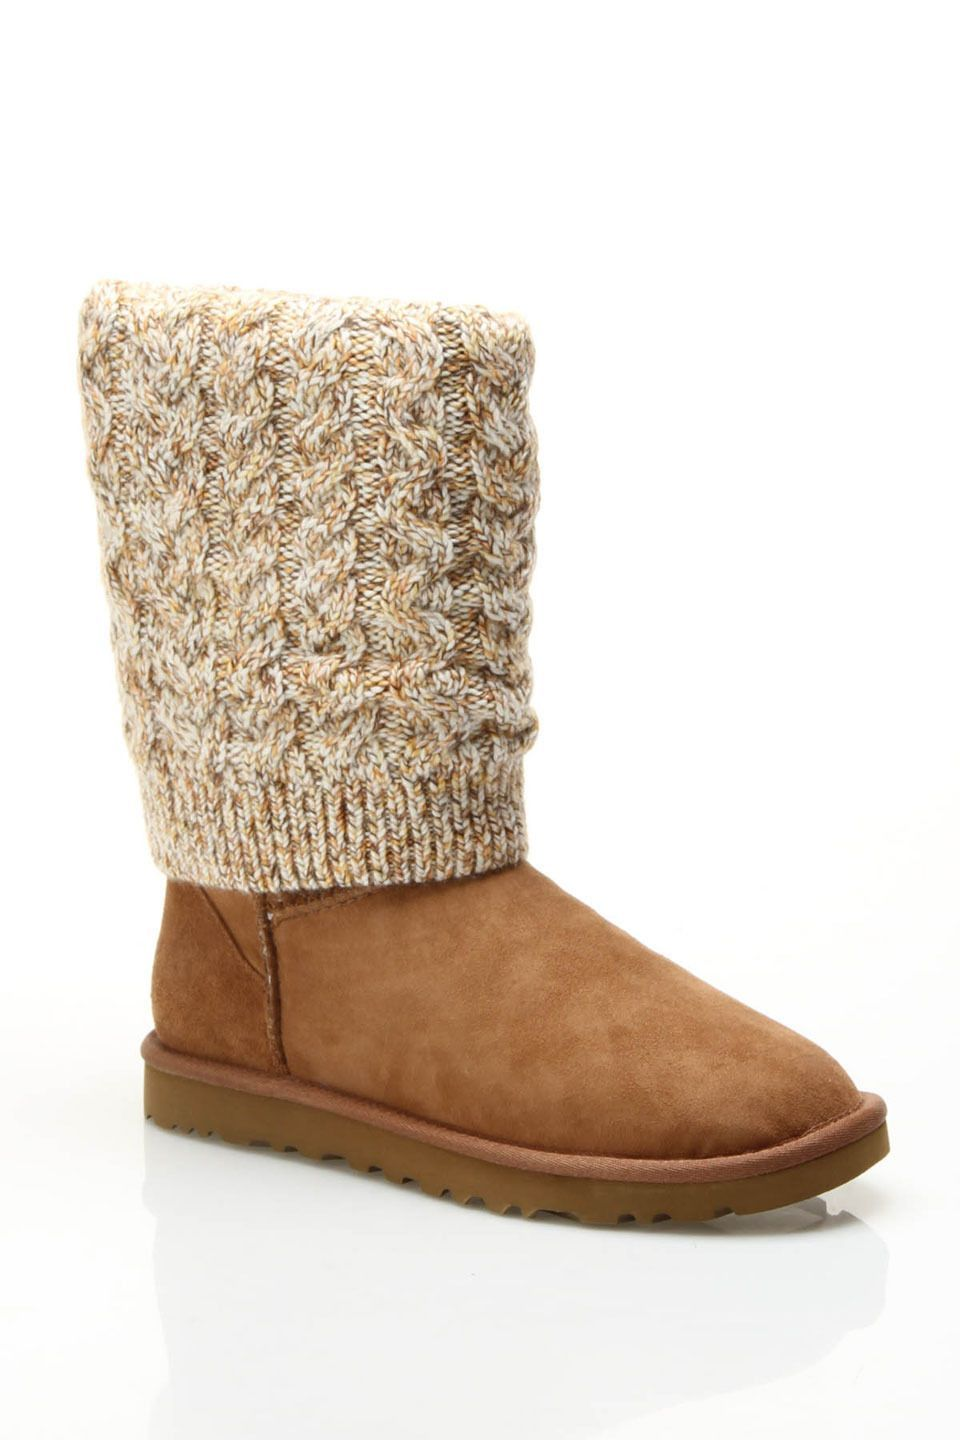 Ugg Ladies' Tularosa Route Boots In Chestnut Multicolor. #Uggboots